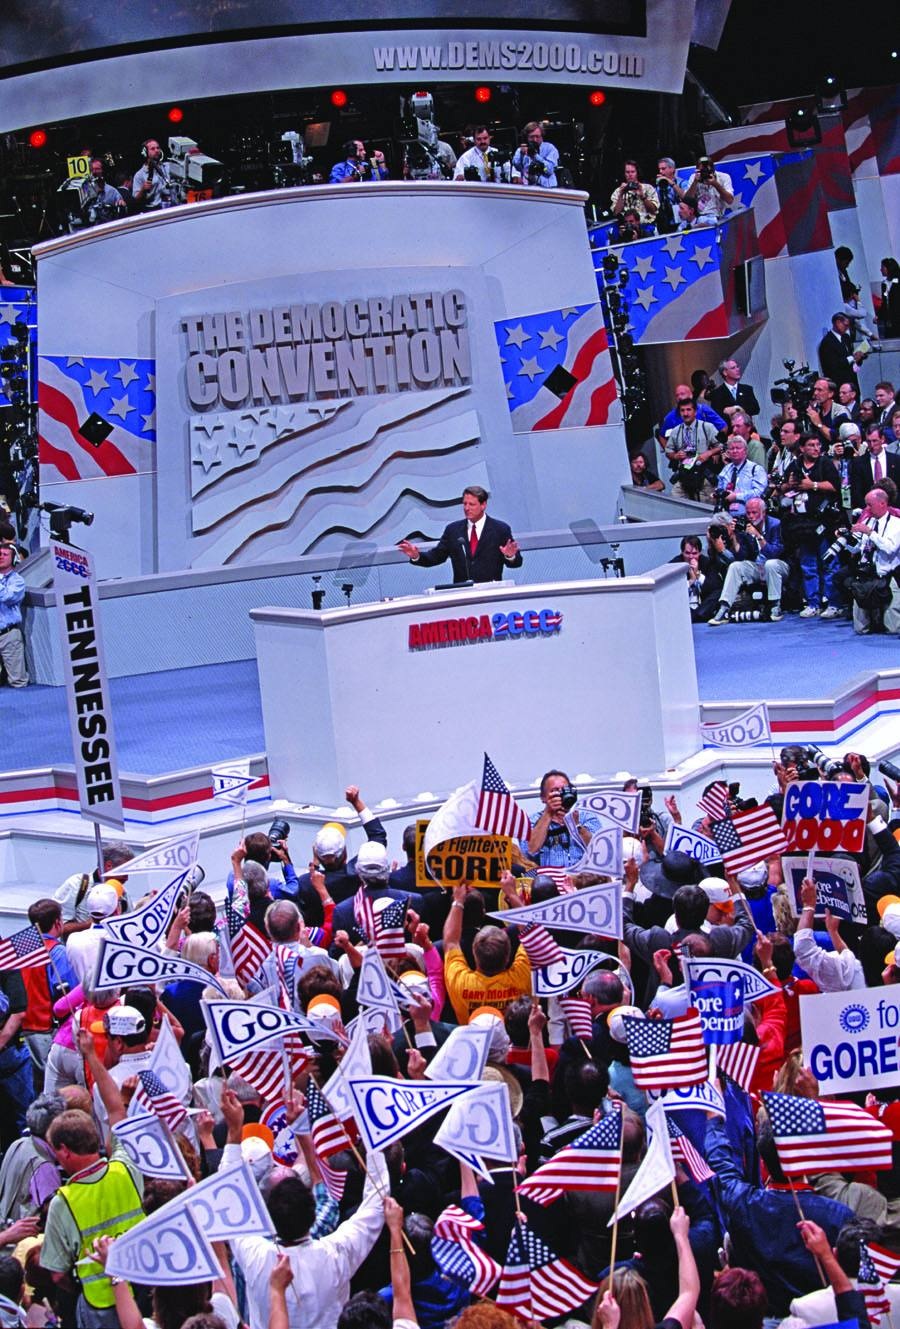 Al Gore speaking at the 2000 Democratic National Convention at STAPLES Center